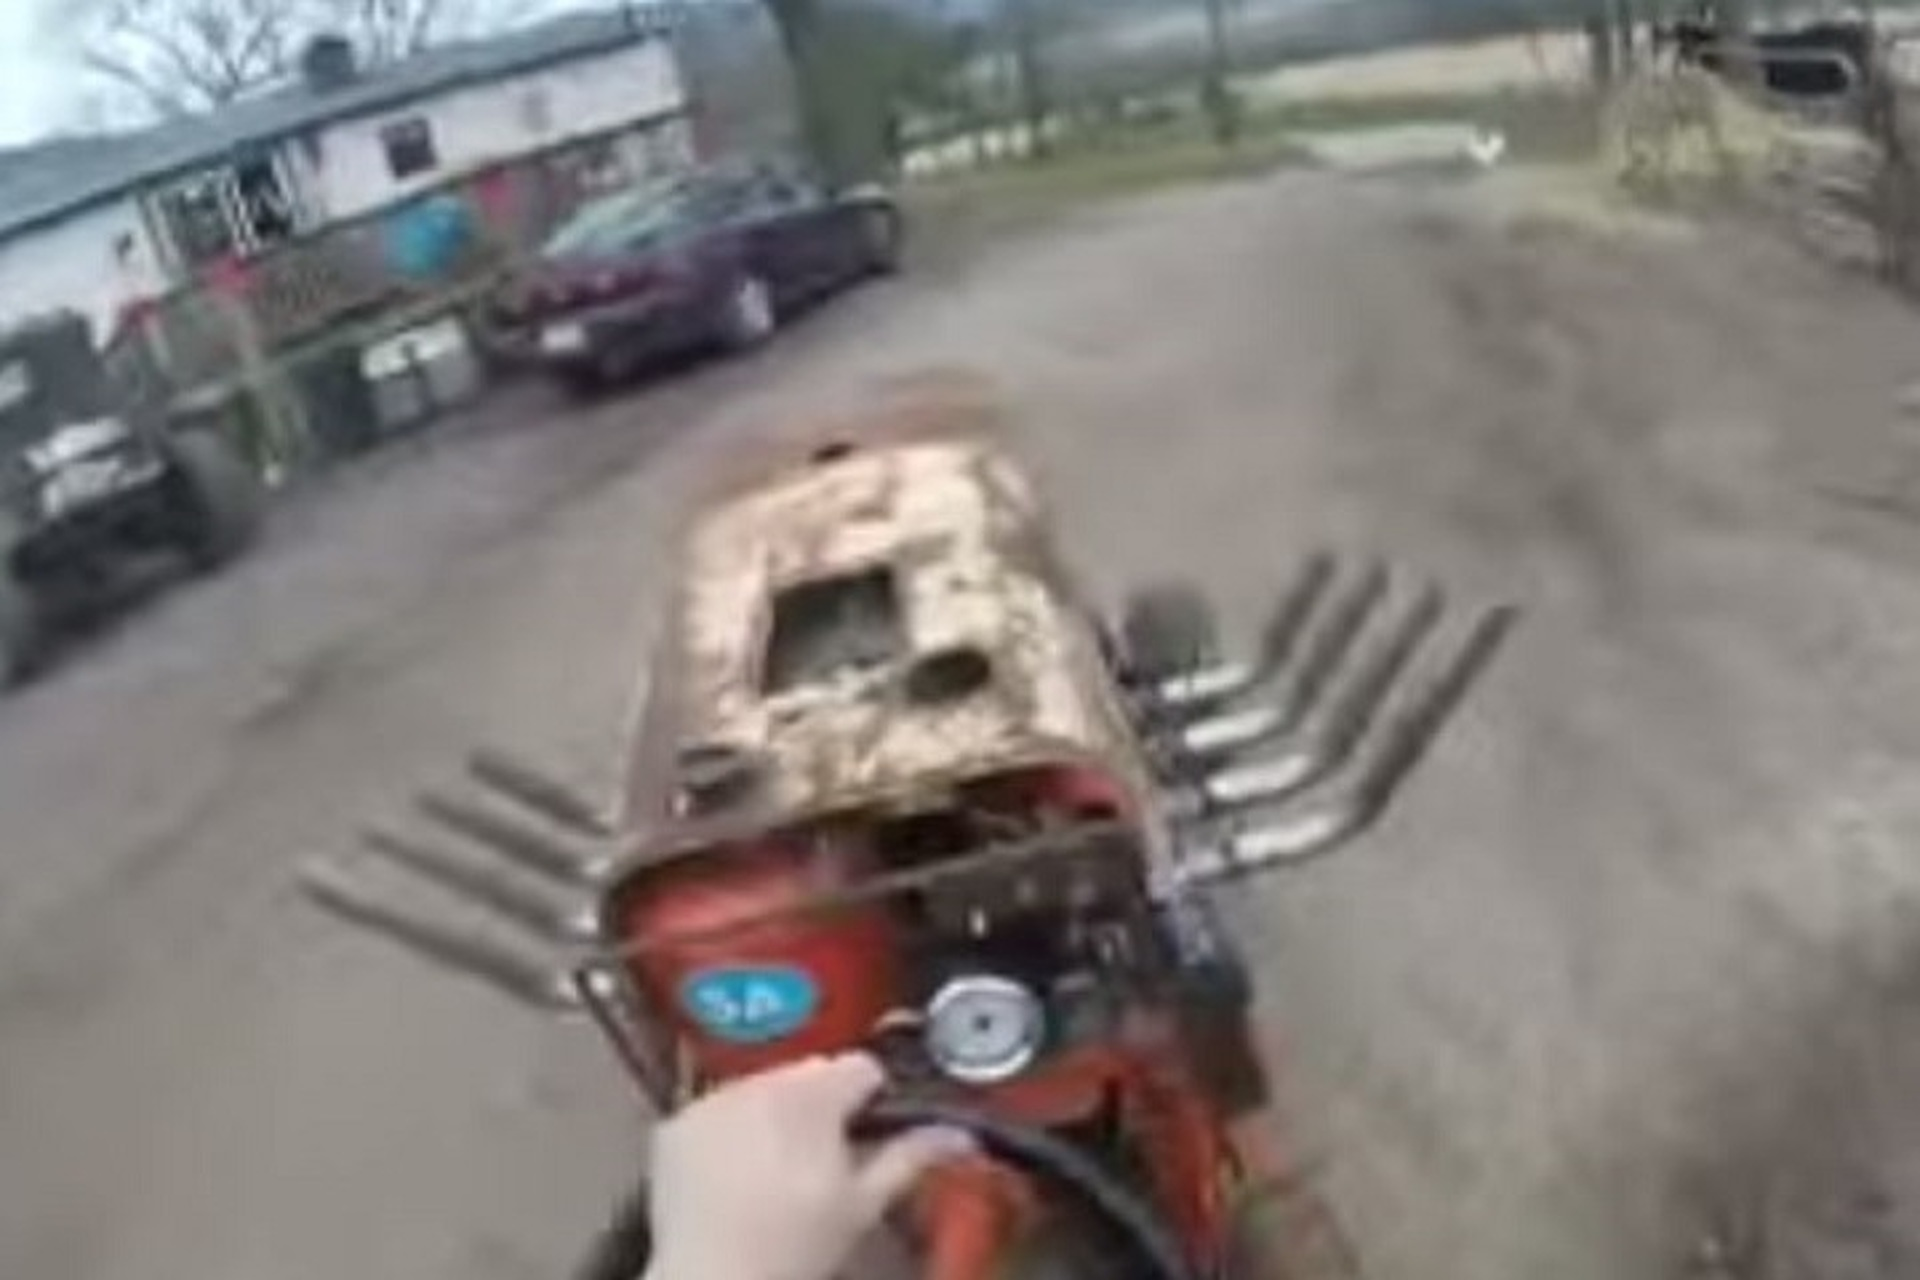 Watch a Big Block Chevrolet Lawn Mower in Action